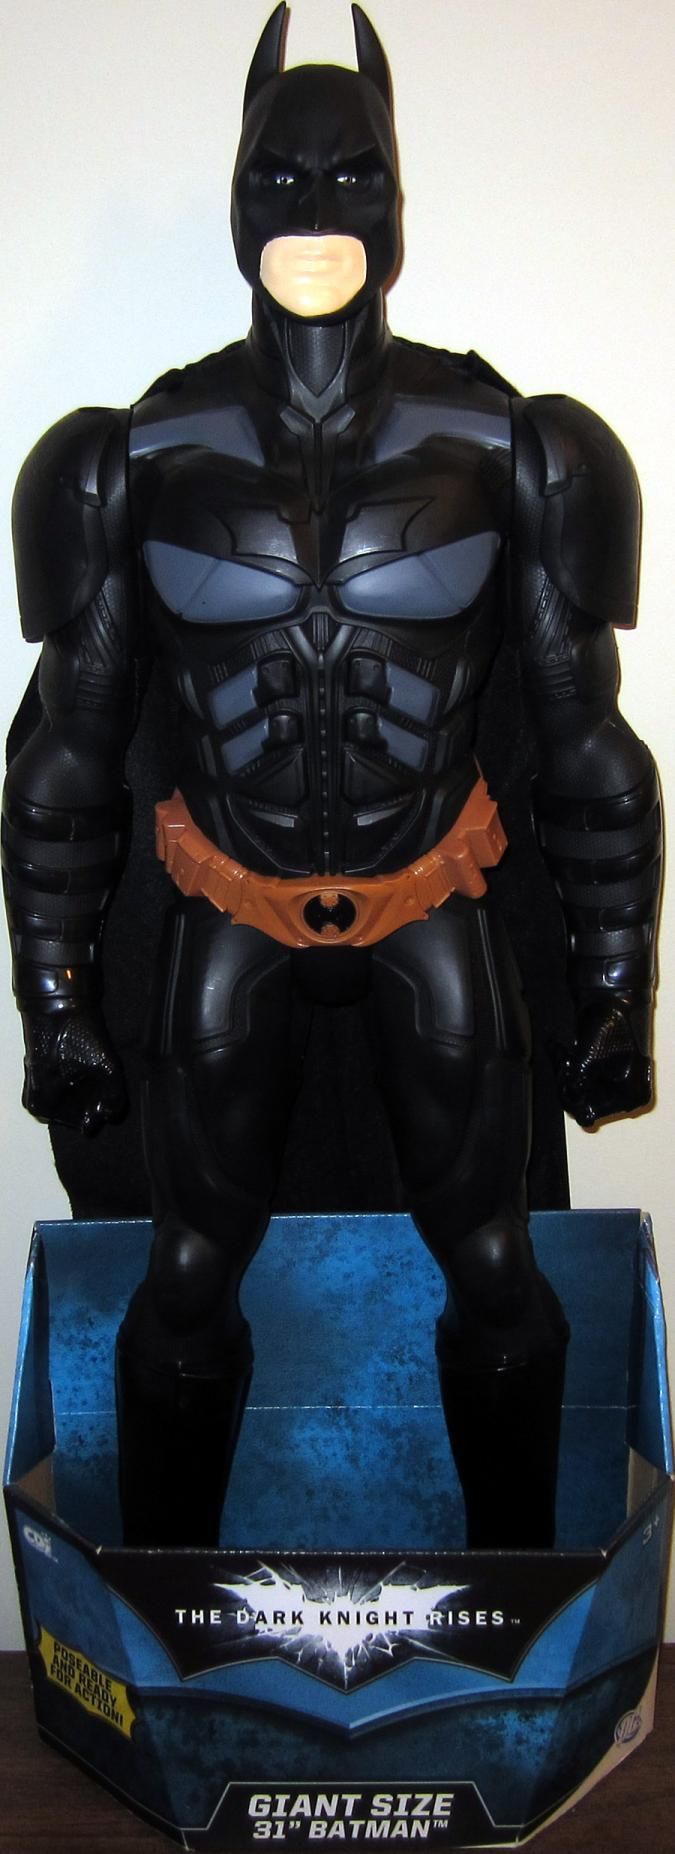 Giant Size 31 inch Batman Dark Knight Rises action figure